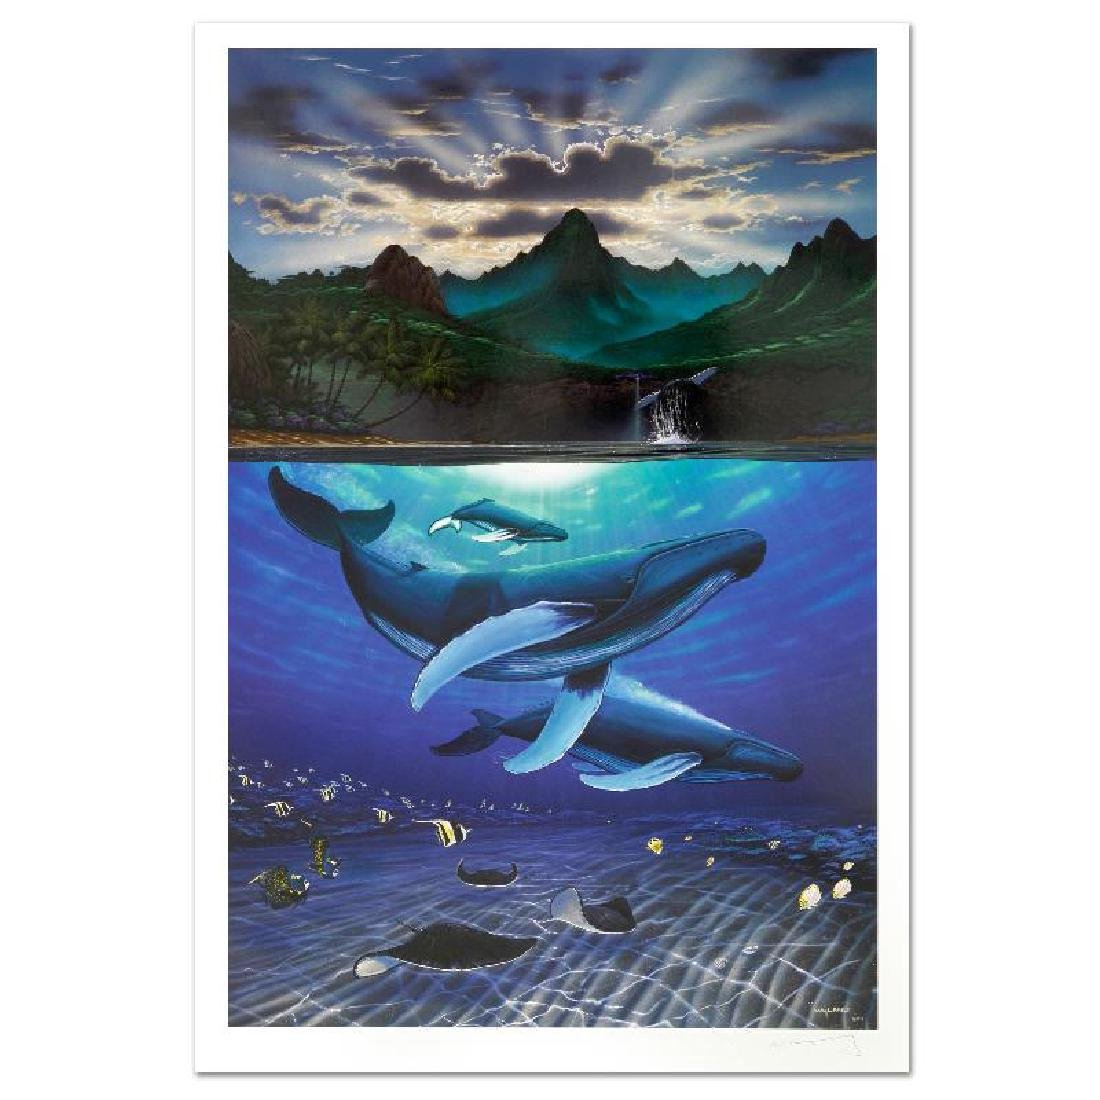 Dawn of Creation Limited Edition Lithograph by Famed